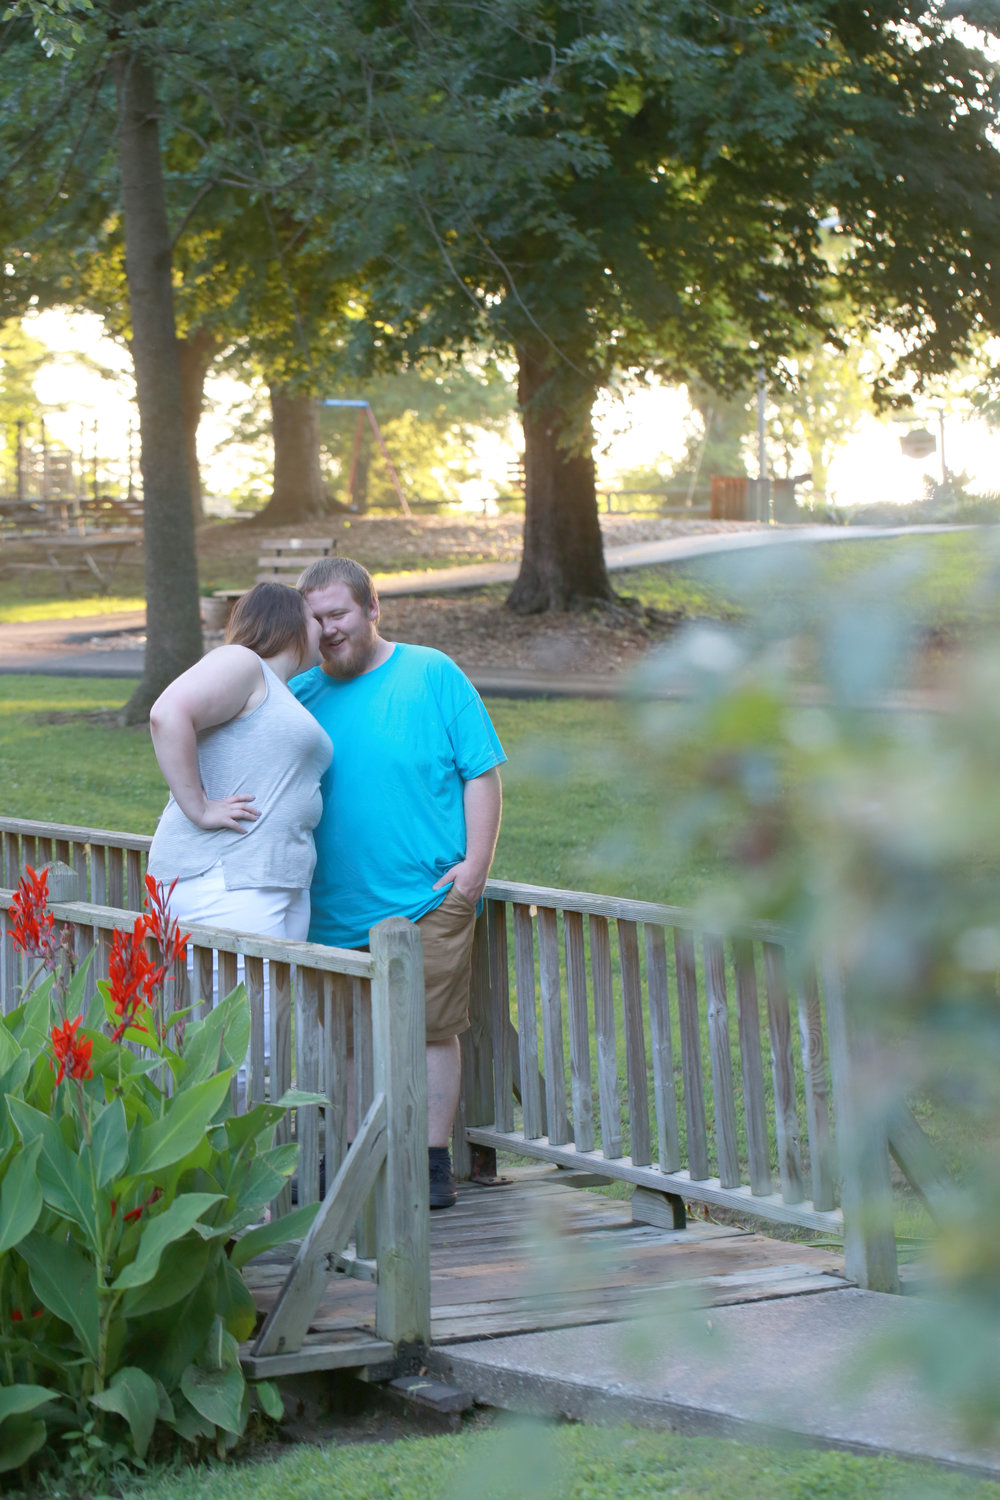 destite_jonathan_engagement_0149.jpg